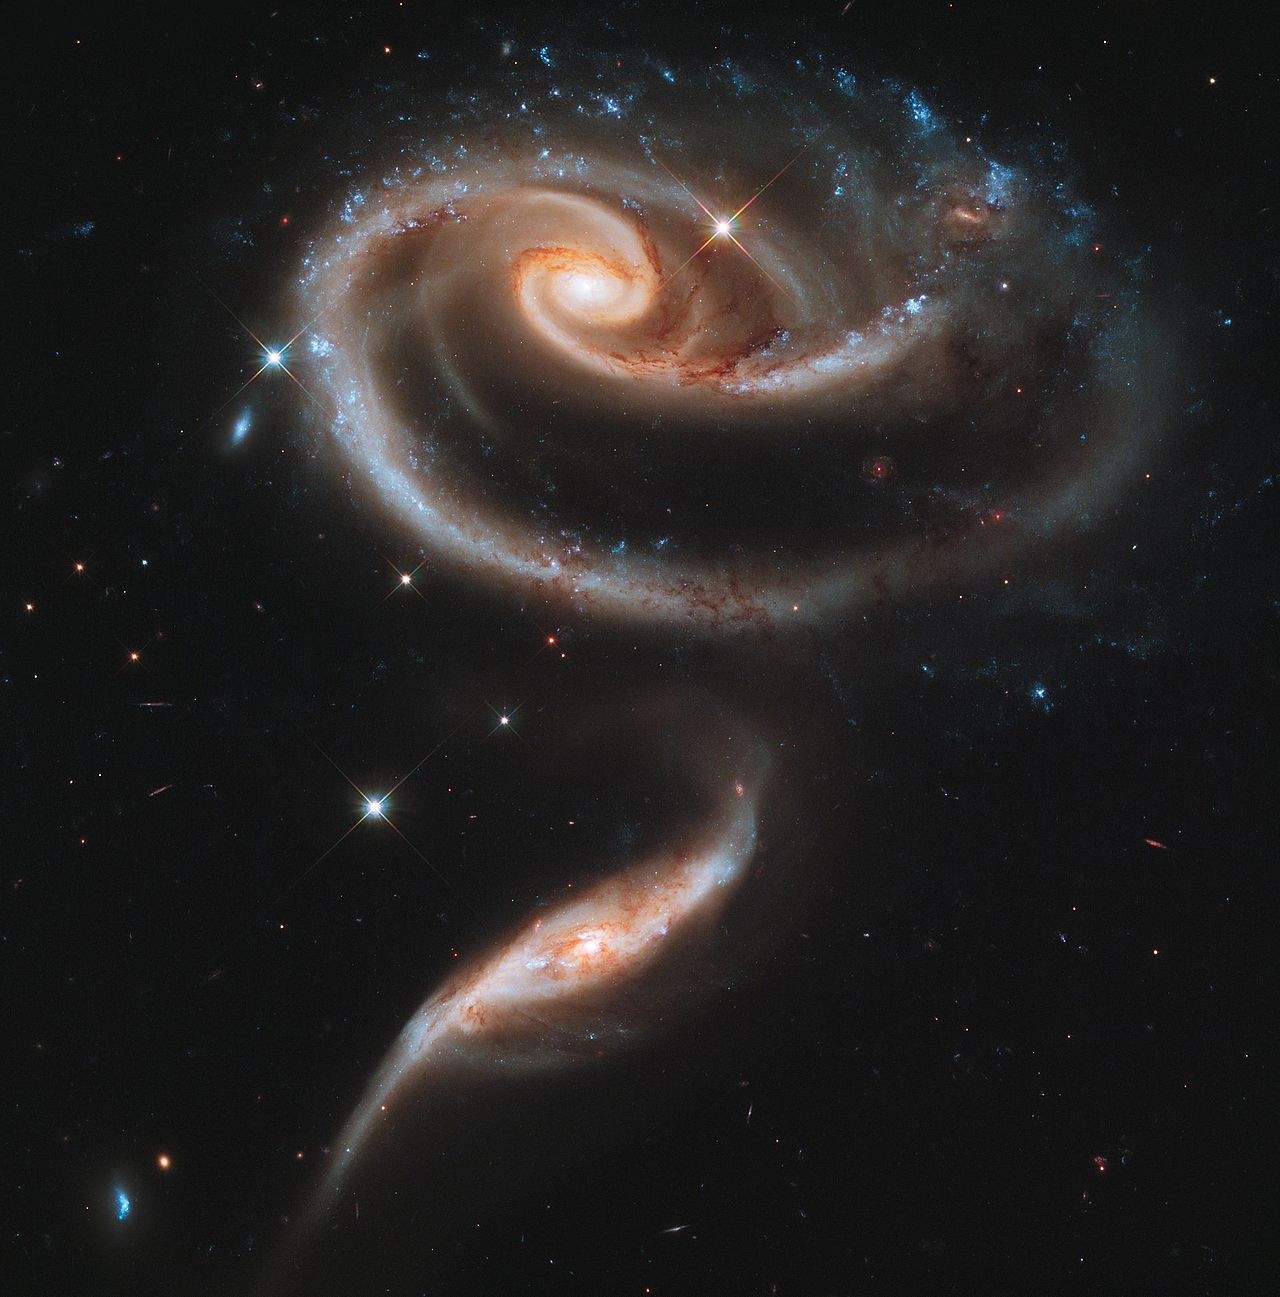 UGC_1810_and_UGC_1813_in_Arp_273_(captured_by_the_Hubble_Space_Telescope).jpg